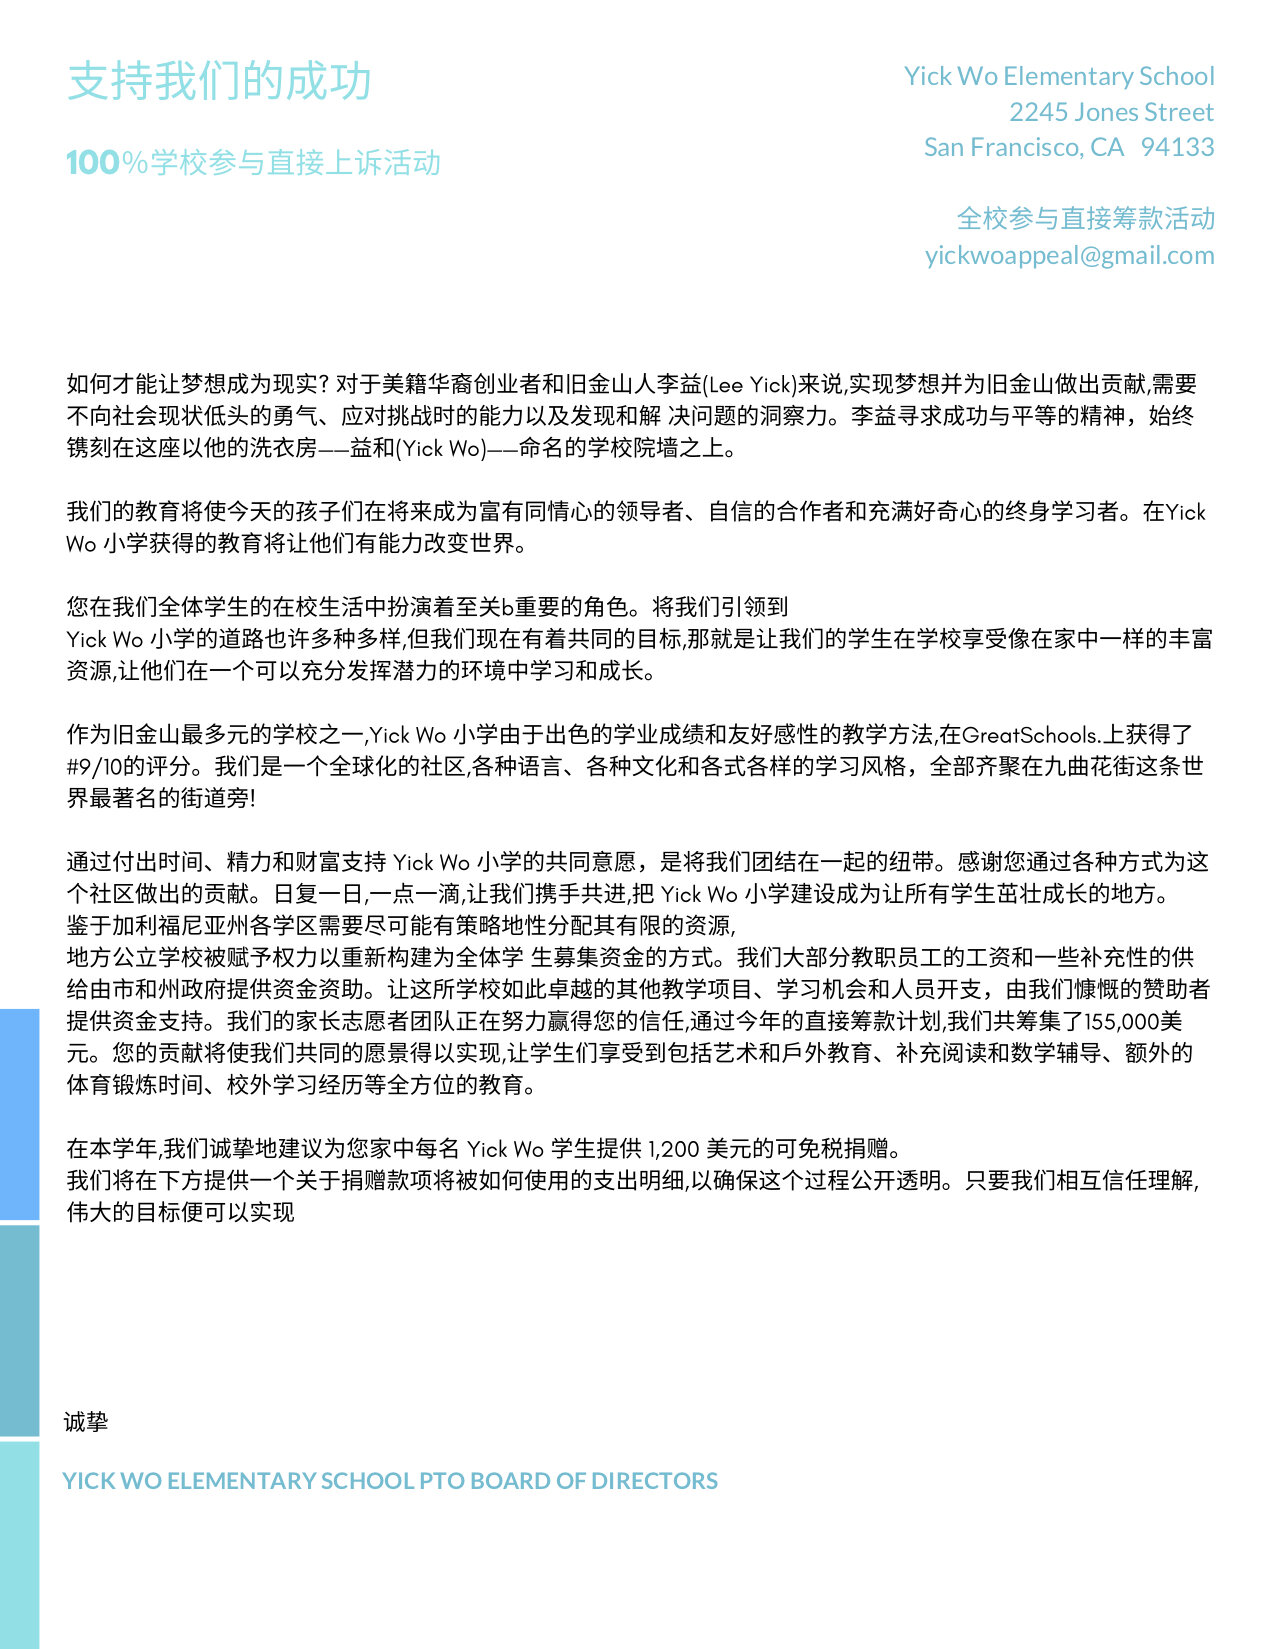 YW ES 19 - 20 DA Letter_Chinese_UPDATED 10 9 19.jpg